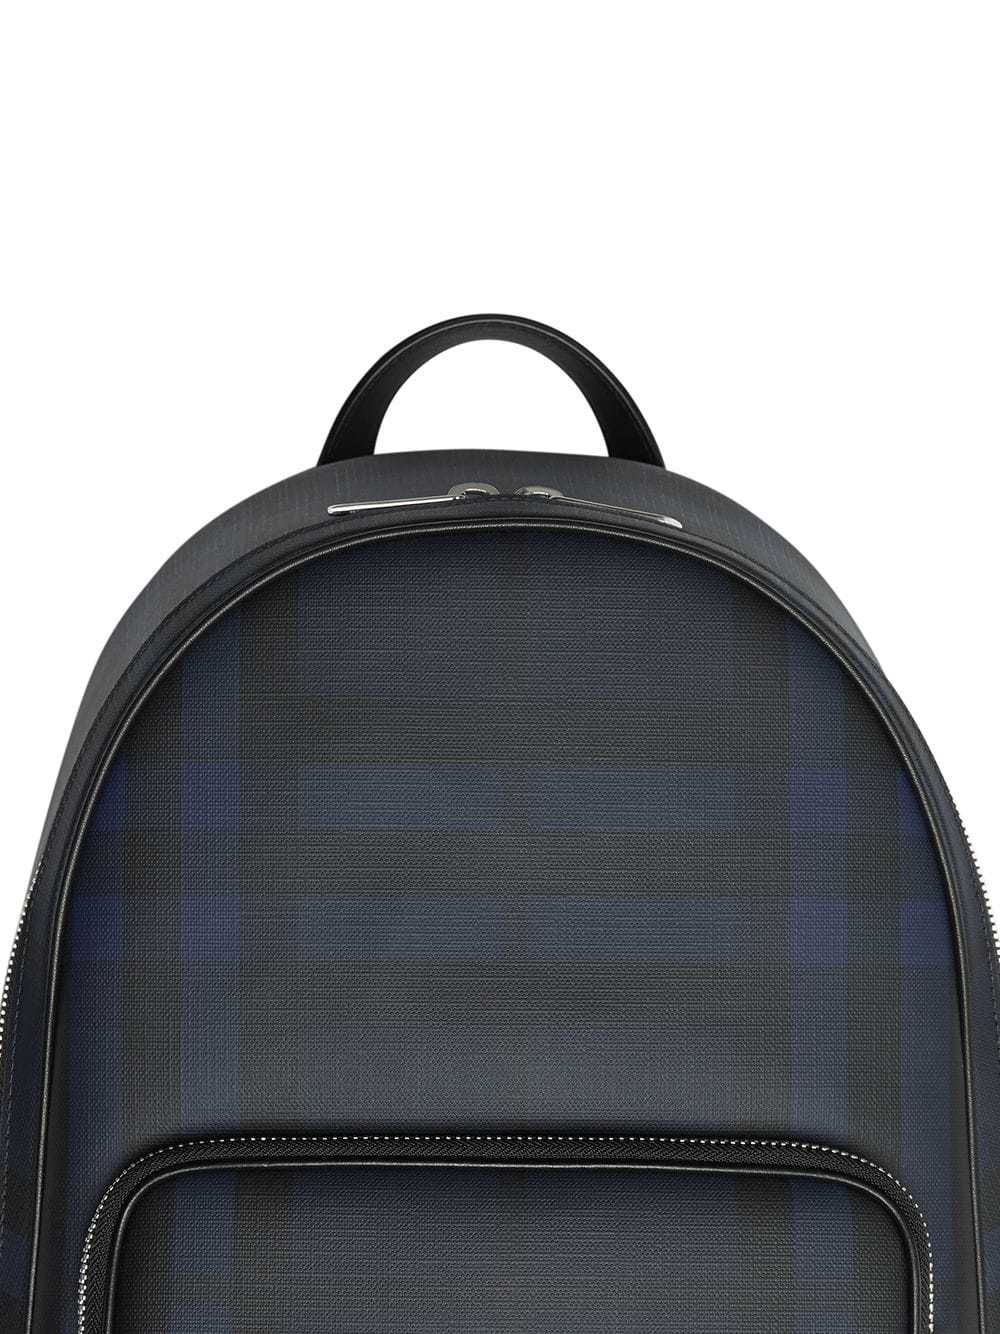 02693f03a Burberry London Check And Leather Backpack, $1,077   farfetch.com ...